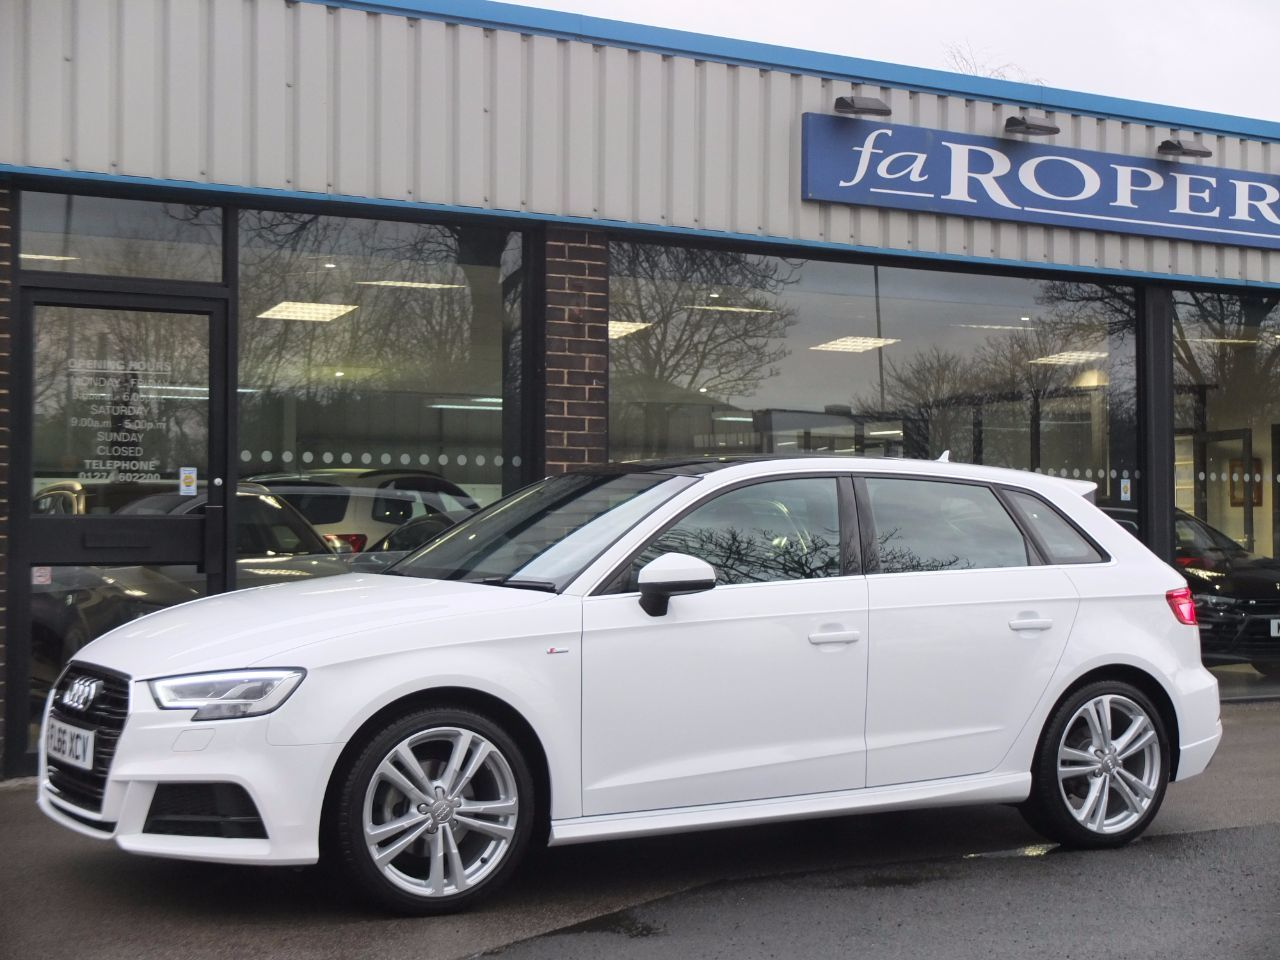 Audi A3 Sportback 1.4 TFSI S Line S Tronic (Cylinder on Demand) Hatchback Petrol Ibis White